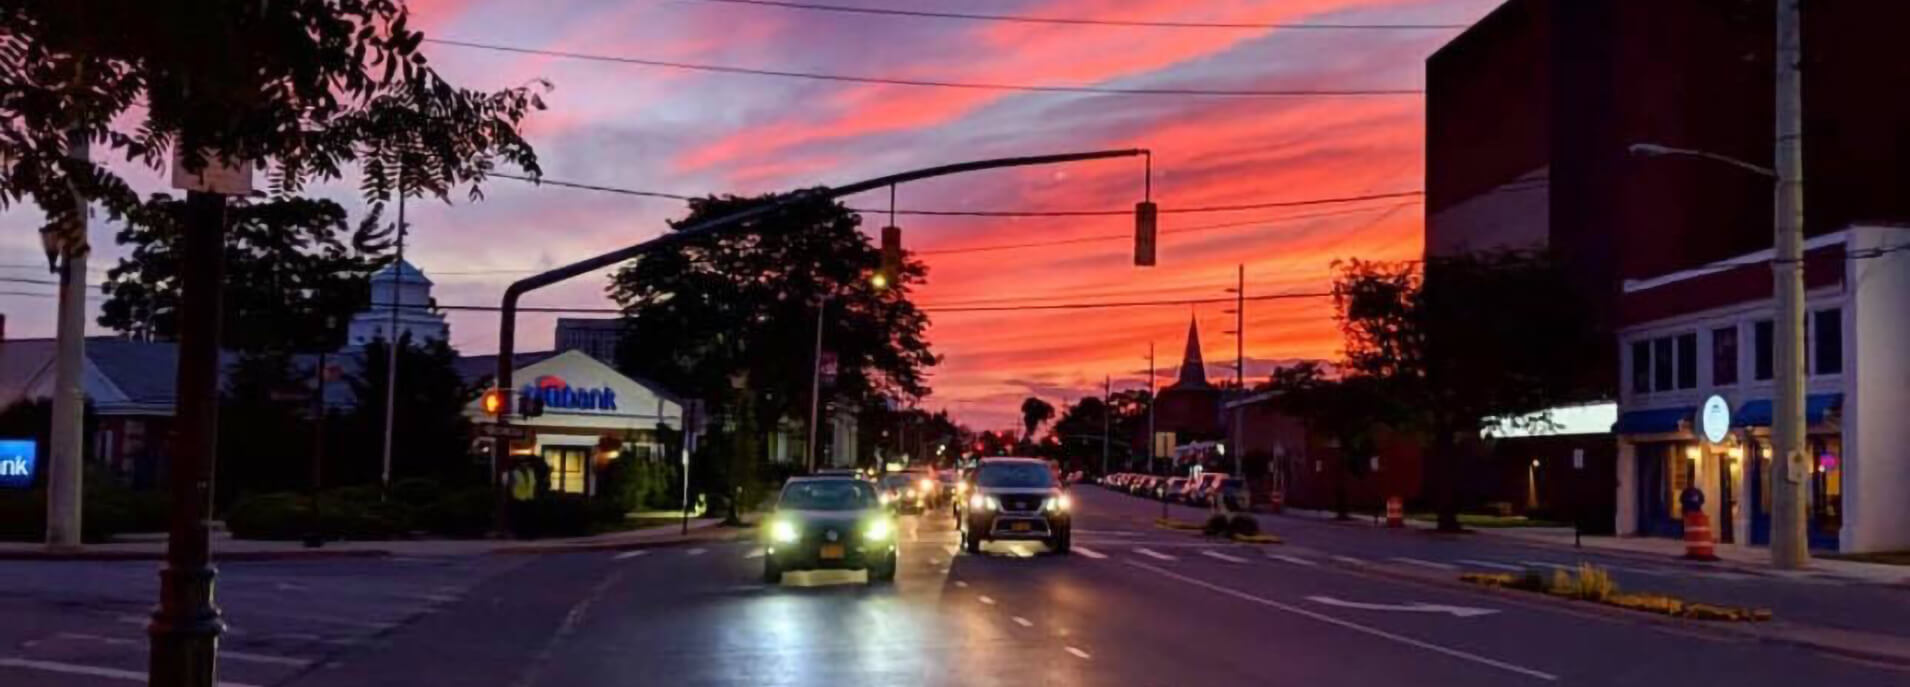 Lynbrook- Merrick Road at Sunset